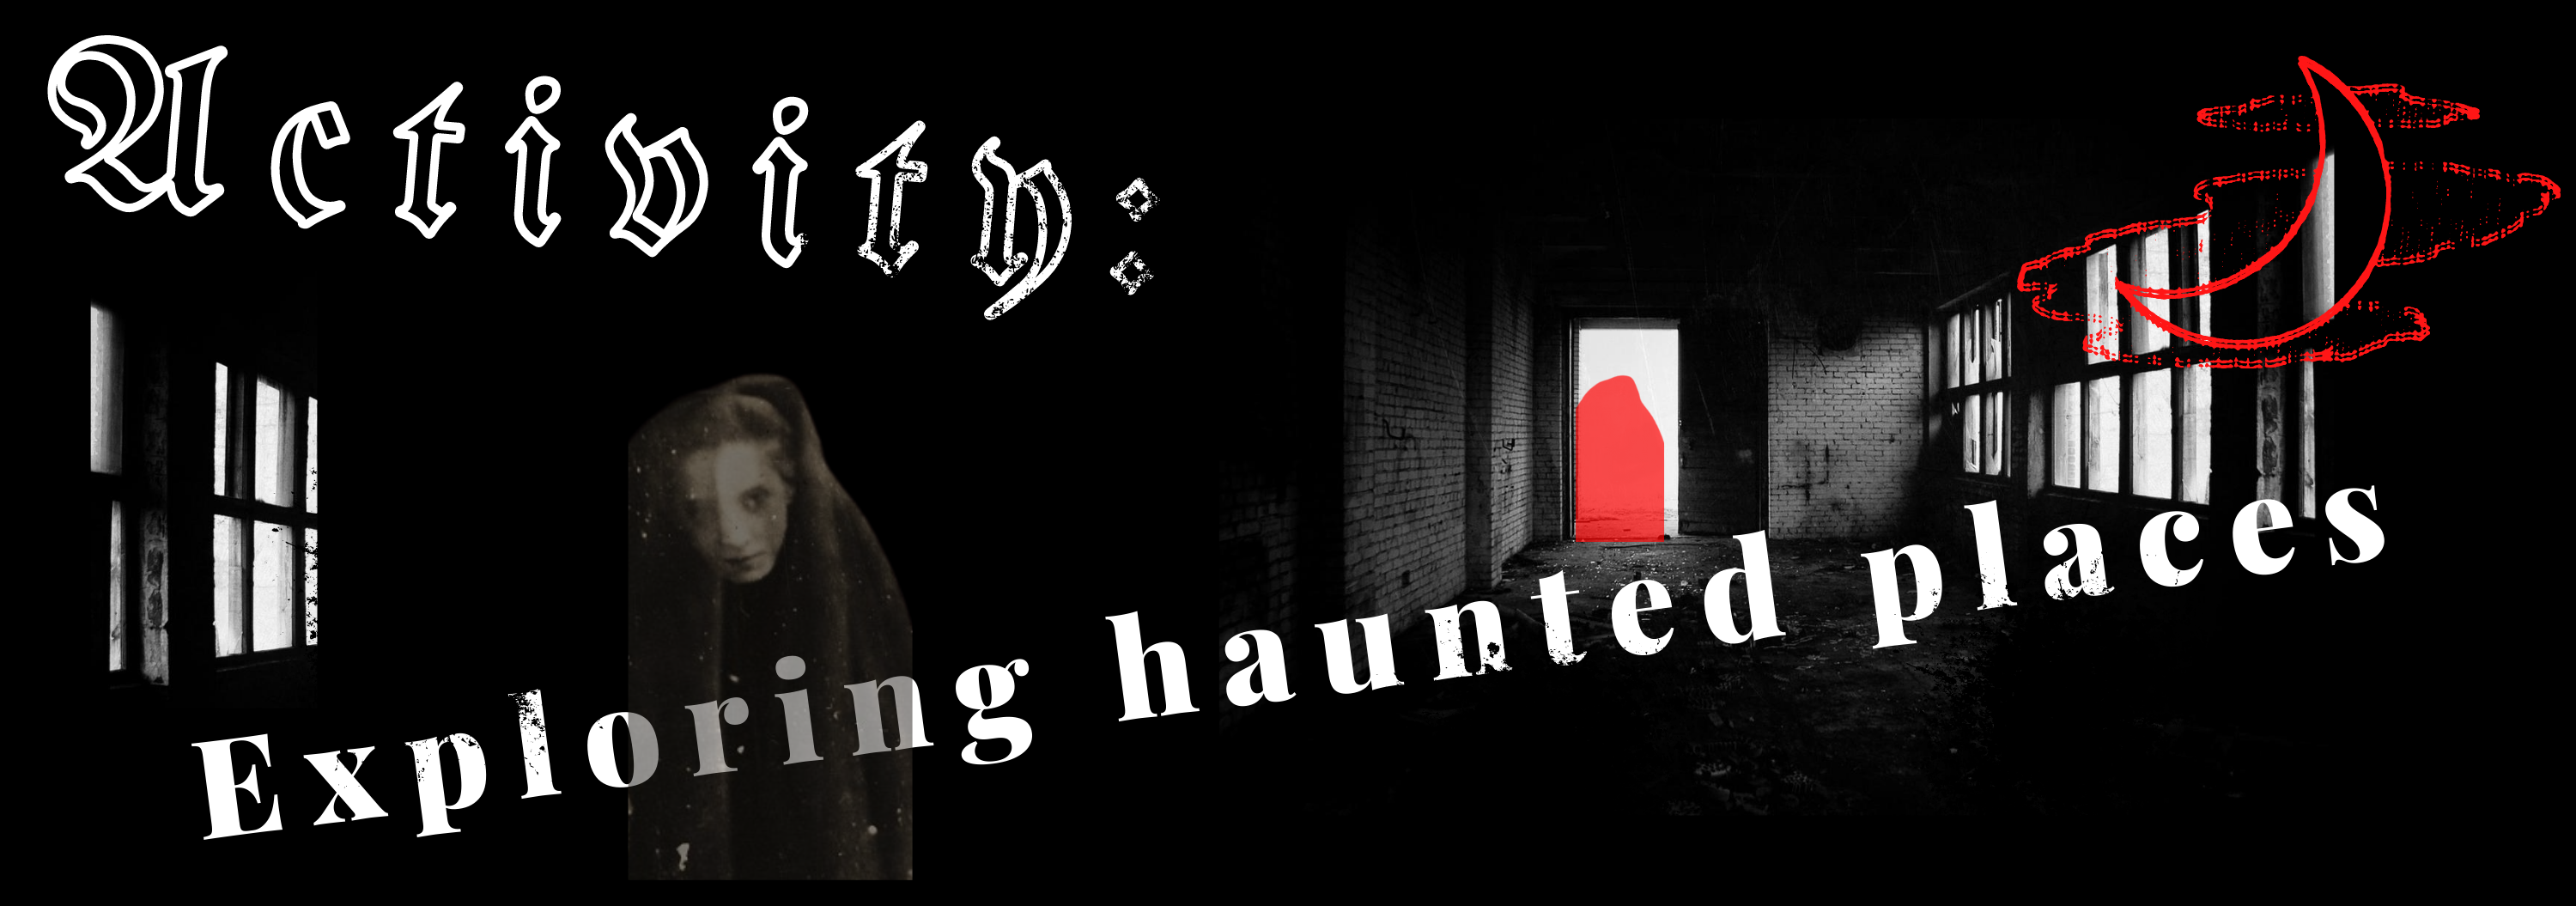 A black, white, and red graphic that says Activity: Exploring haunted places, featuring images of abandoned buildings, a crescent moon with clouds, and a transparent female ghost.